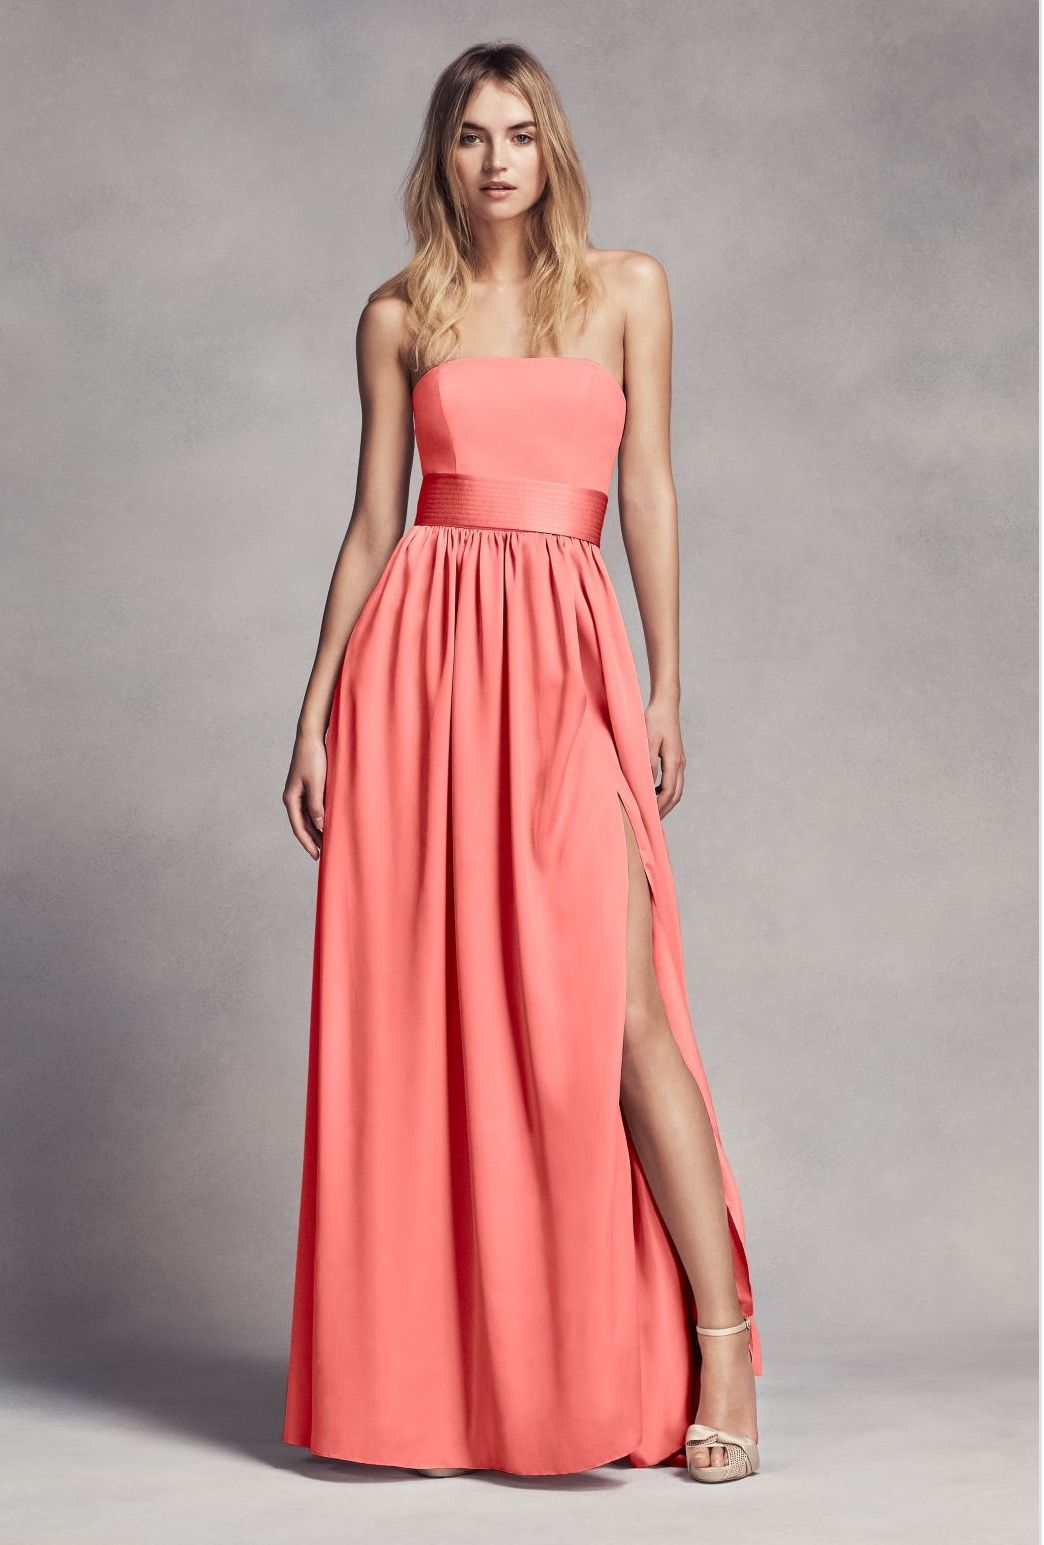 Pin de Bailey Fator en Bridesmaid dresses | Pinterest